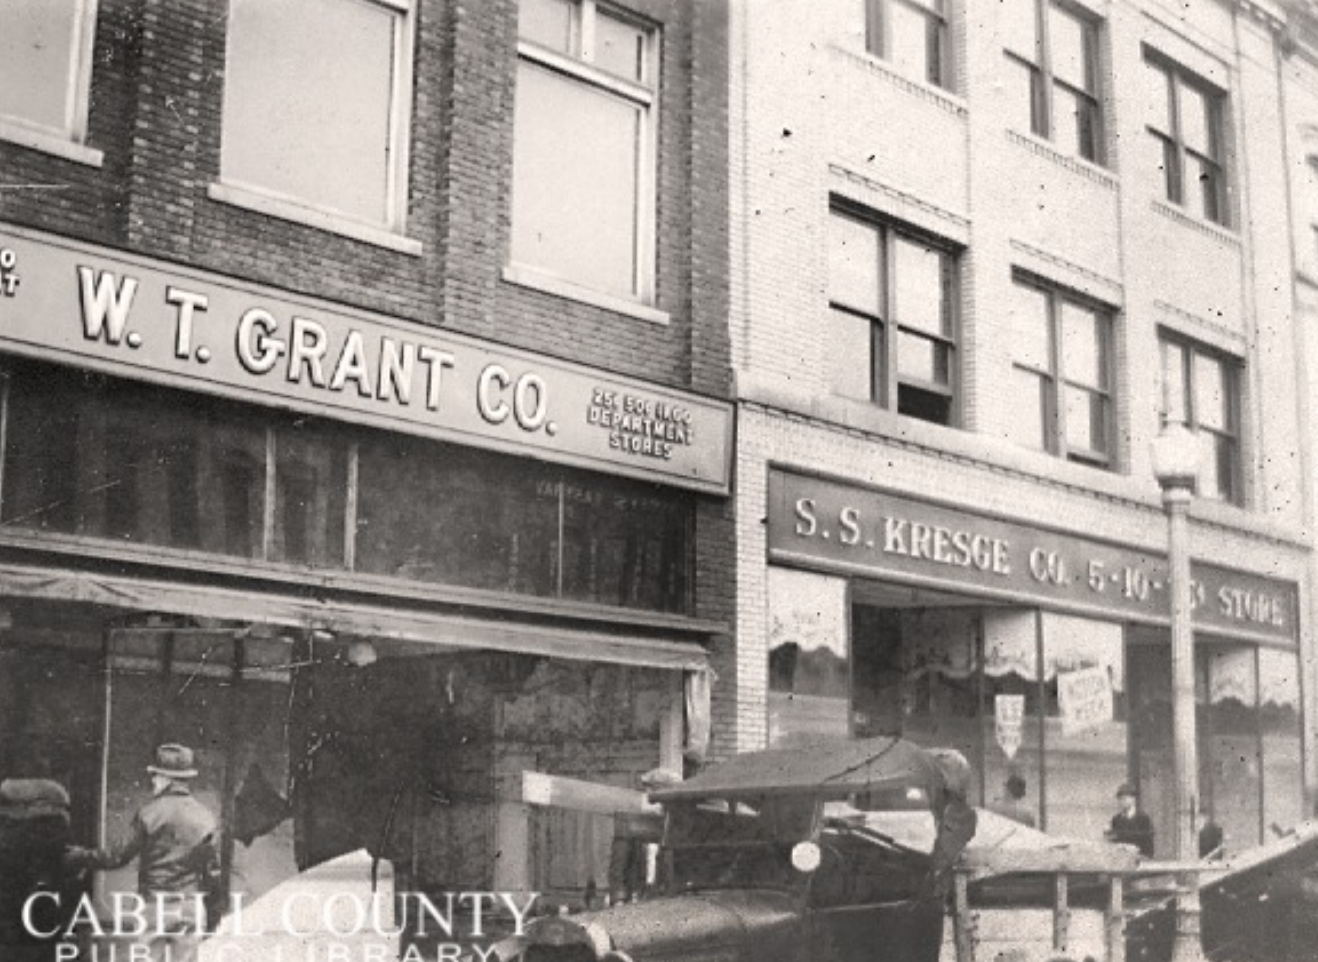 Grant's storefront during the 1937 flood